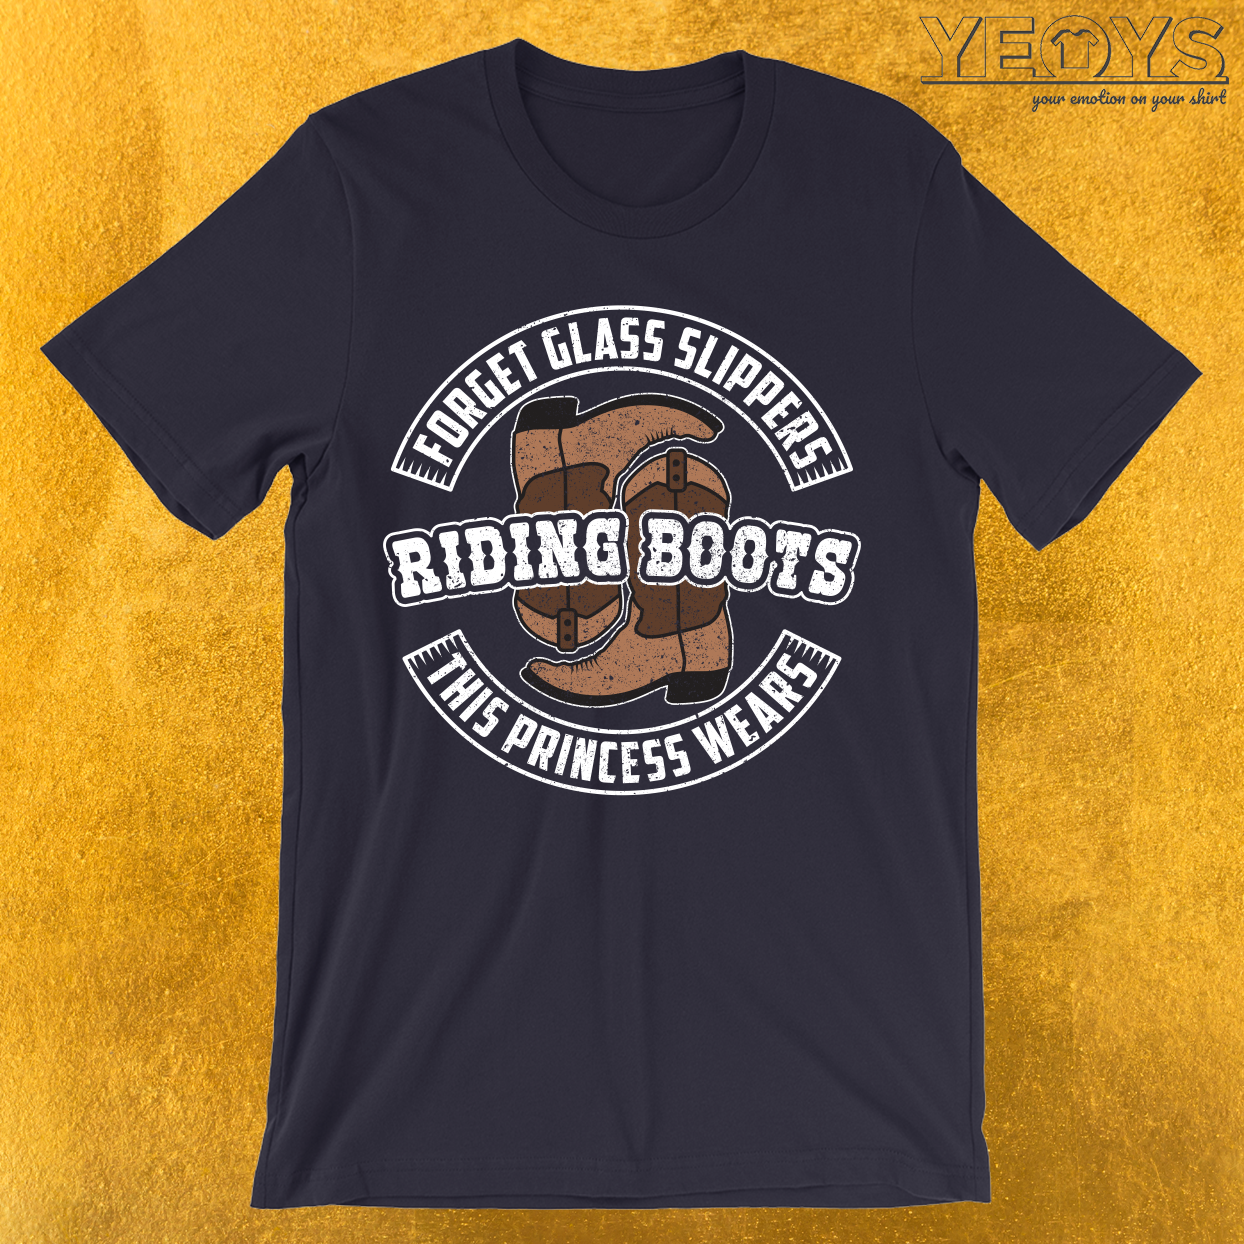 This Princess Wears Riding Boots T-Shirt